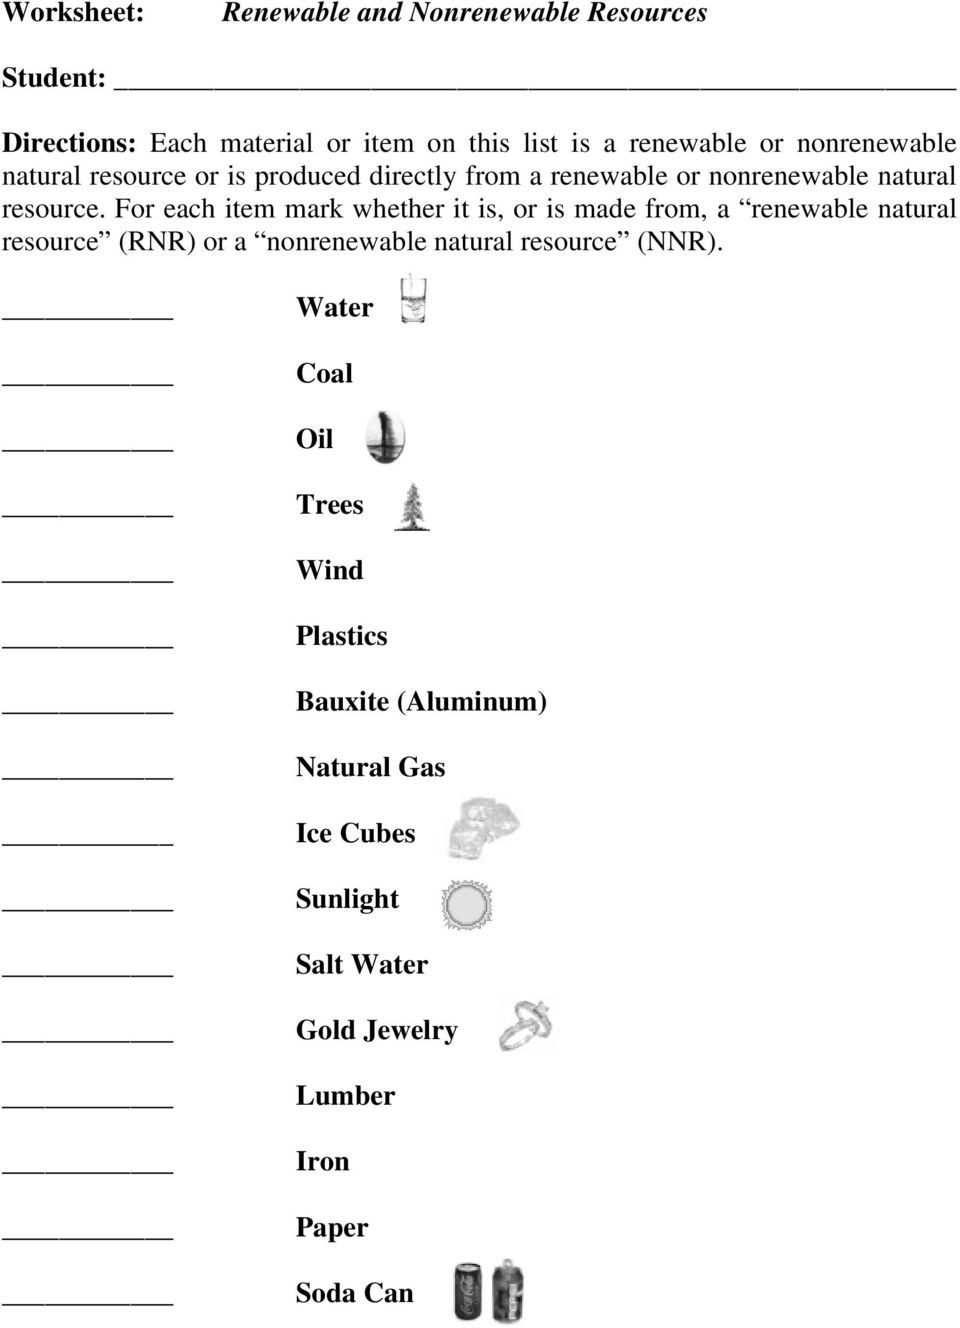 Natural Resources Worksheets 3rd Grade Renewable and Nonrenewable Resources Pdf Free Download